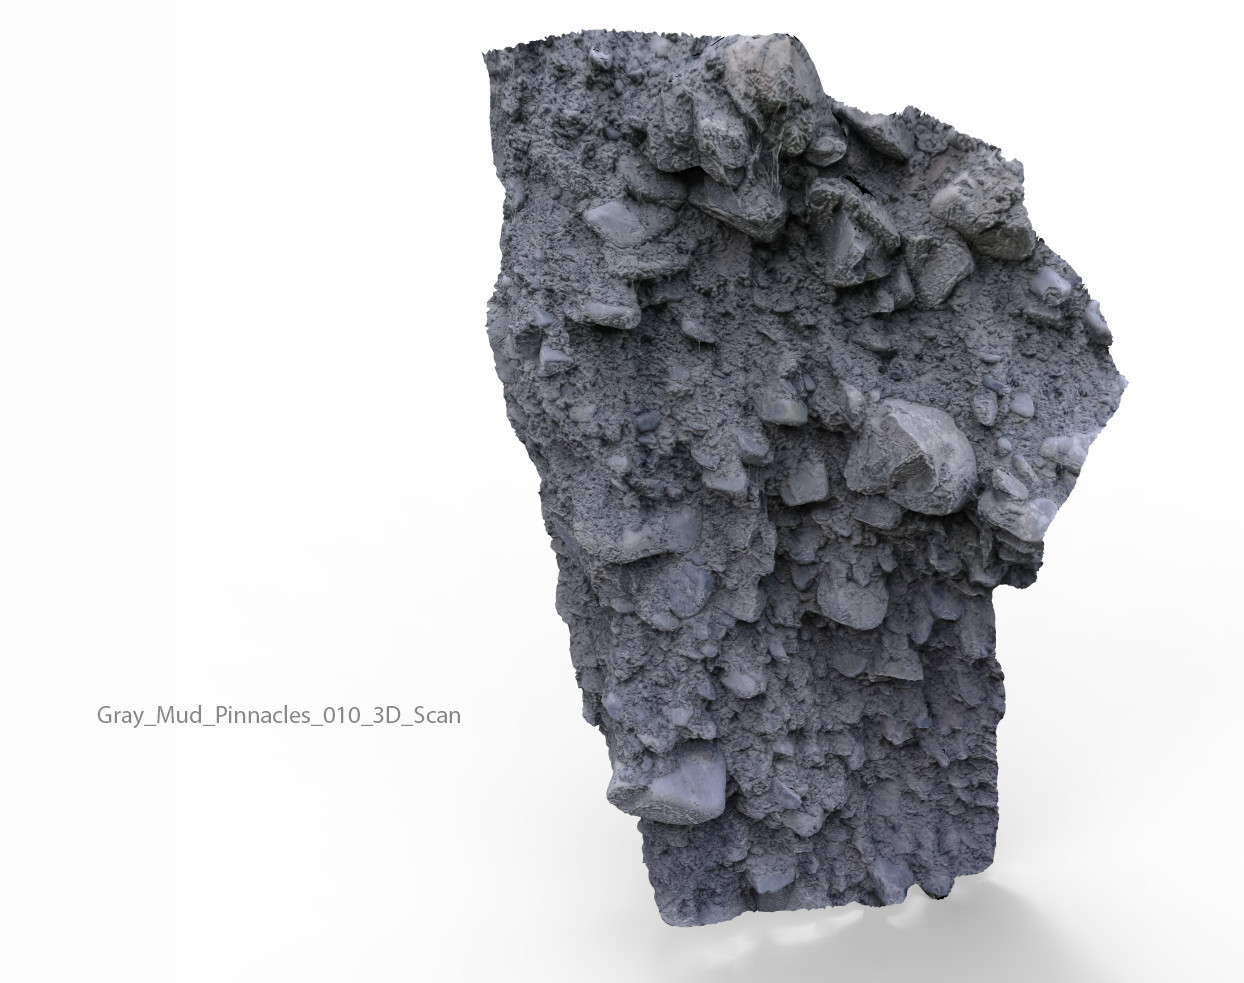 Anton tenitsky gray mud pinnacles 010 3d scan